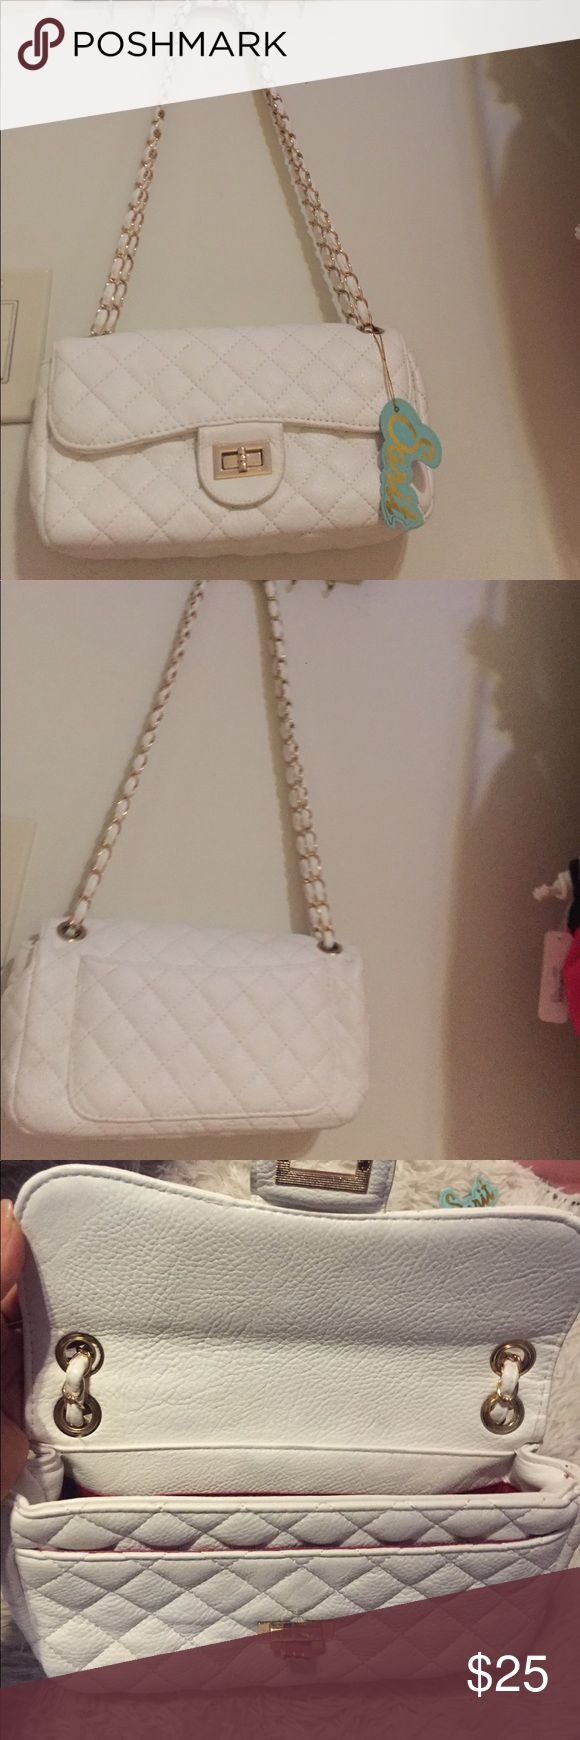 White Quilted Shoulder Bag White Quilted Shoulder Bag Bags Crossbody Bags